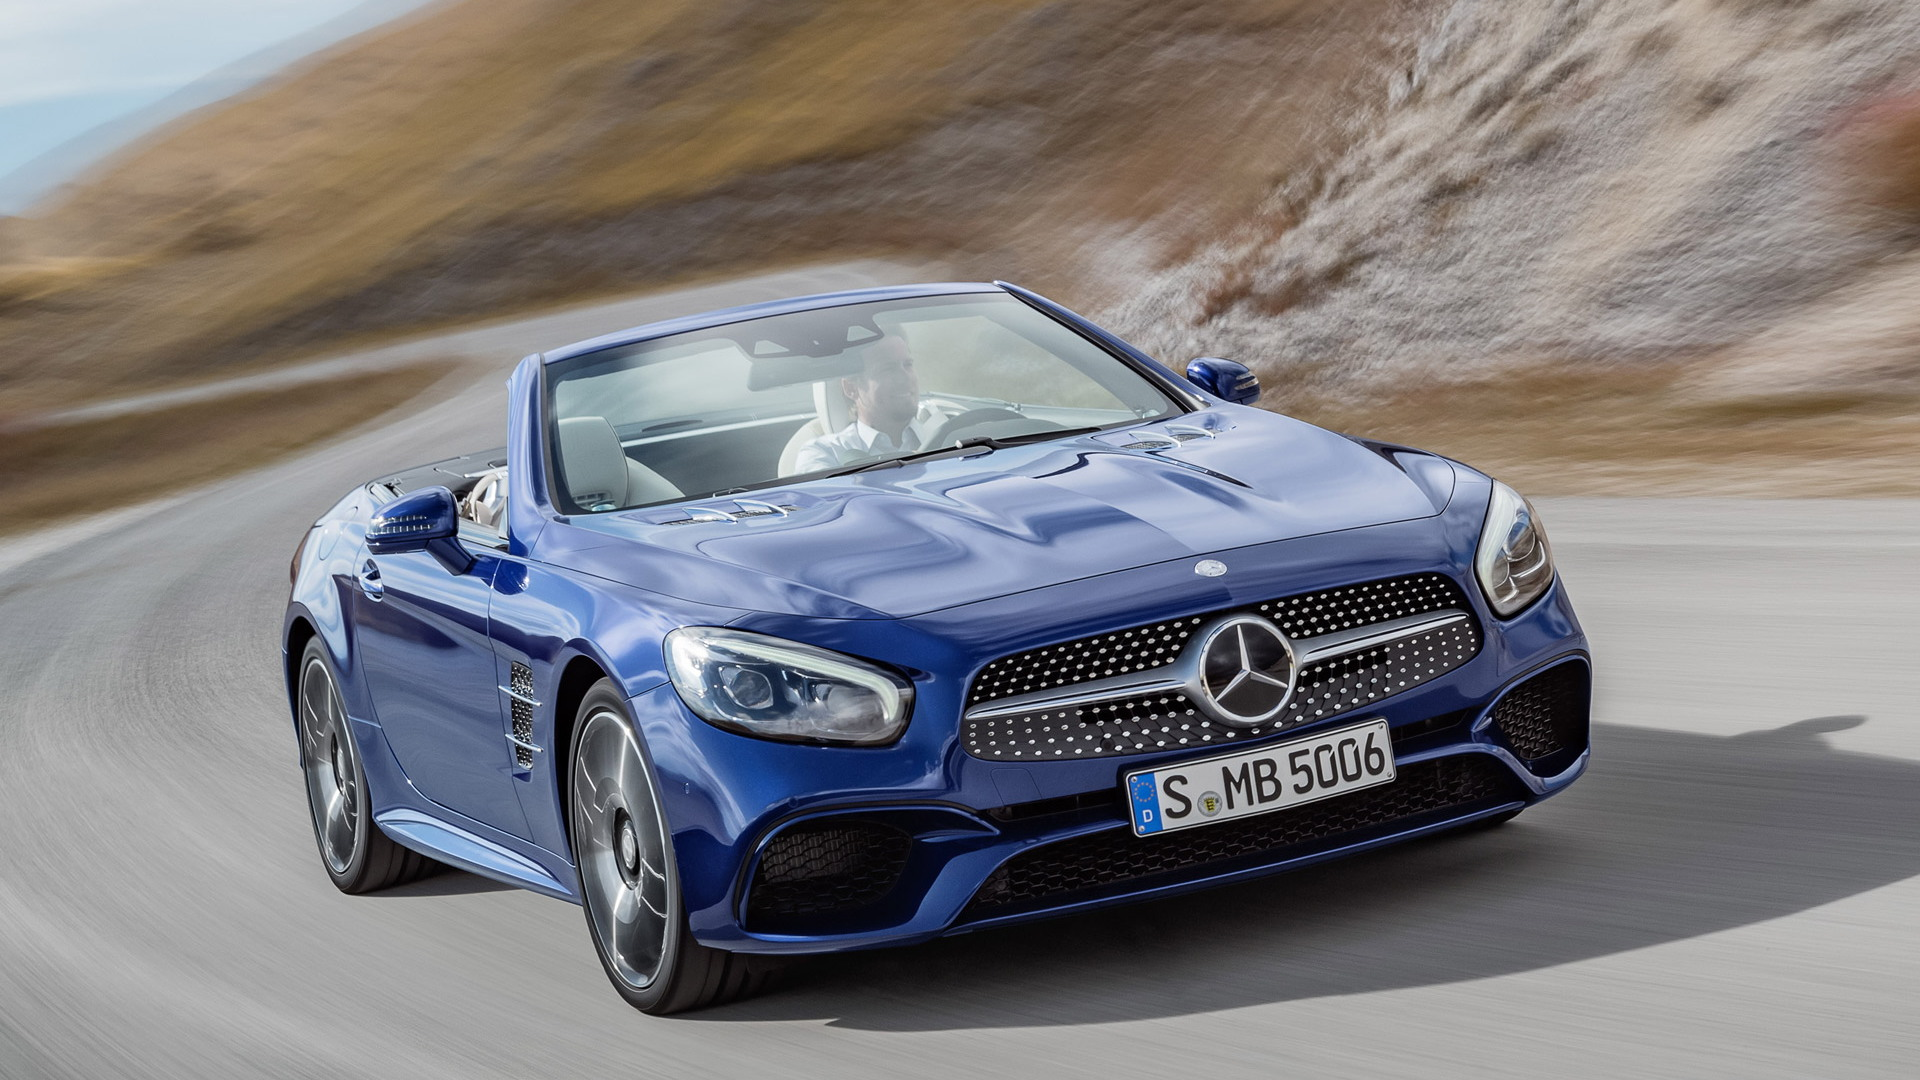 2017 Mercedes-Benz SL Leaked Ahead Of Los Angeles Auto Show